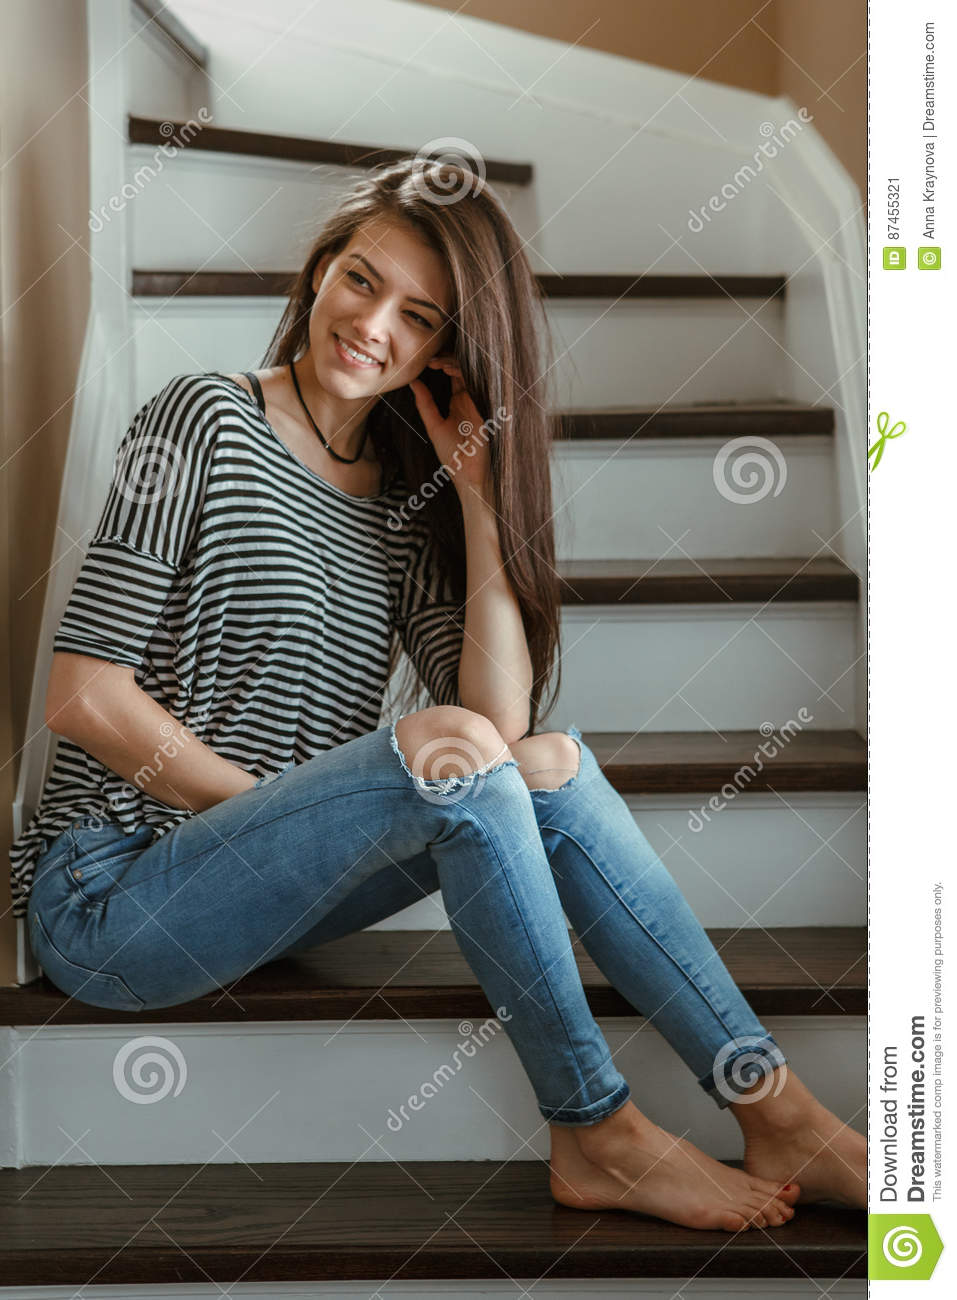 f2c39a4643e Closeup portrait of smiling Caucasian young beautiful woman model with messy  long hair in ripped blue jeans and striped t-shirt sitting on stairs indoor  ...